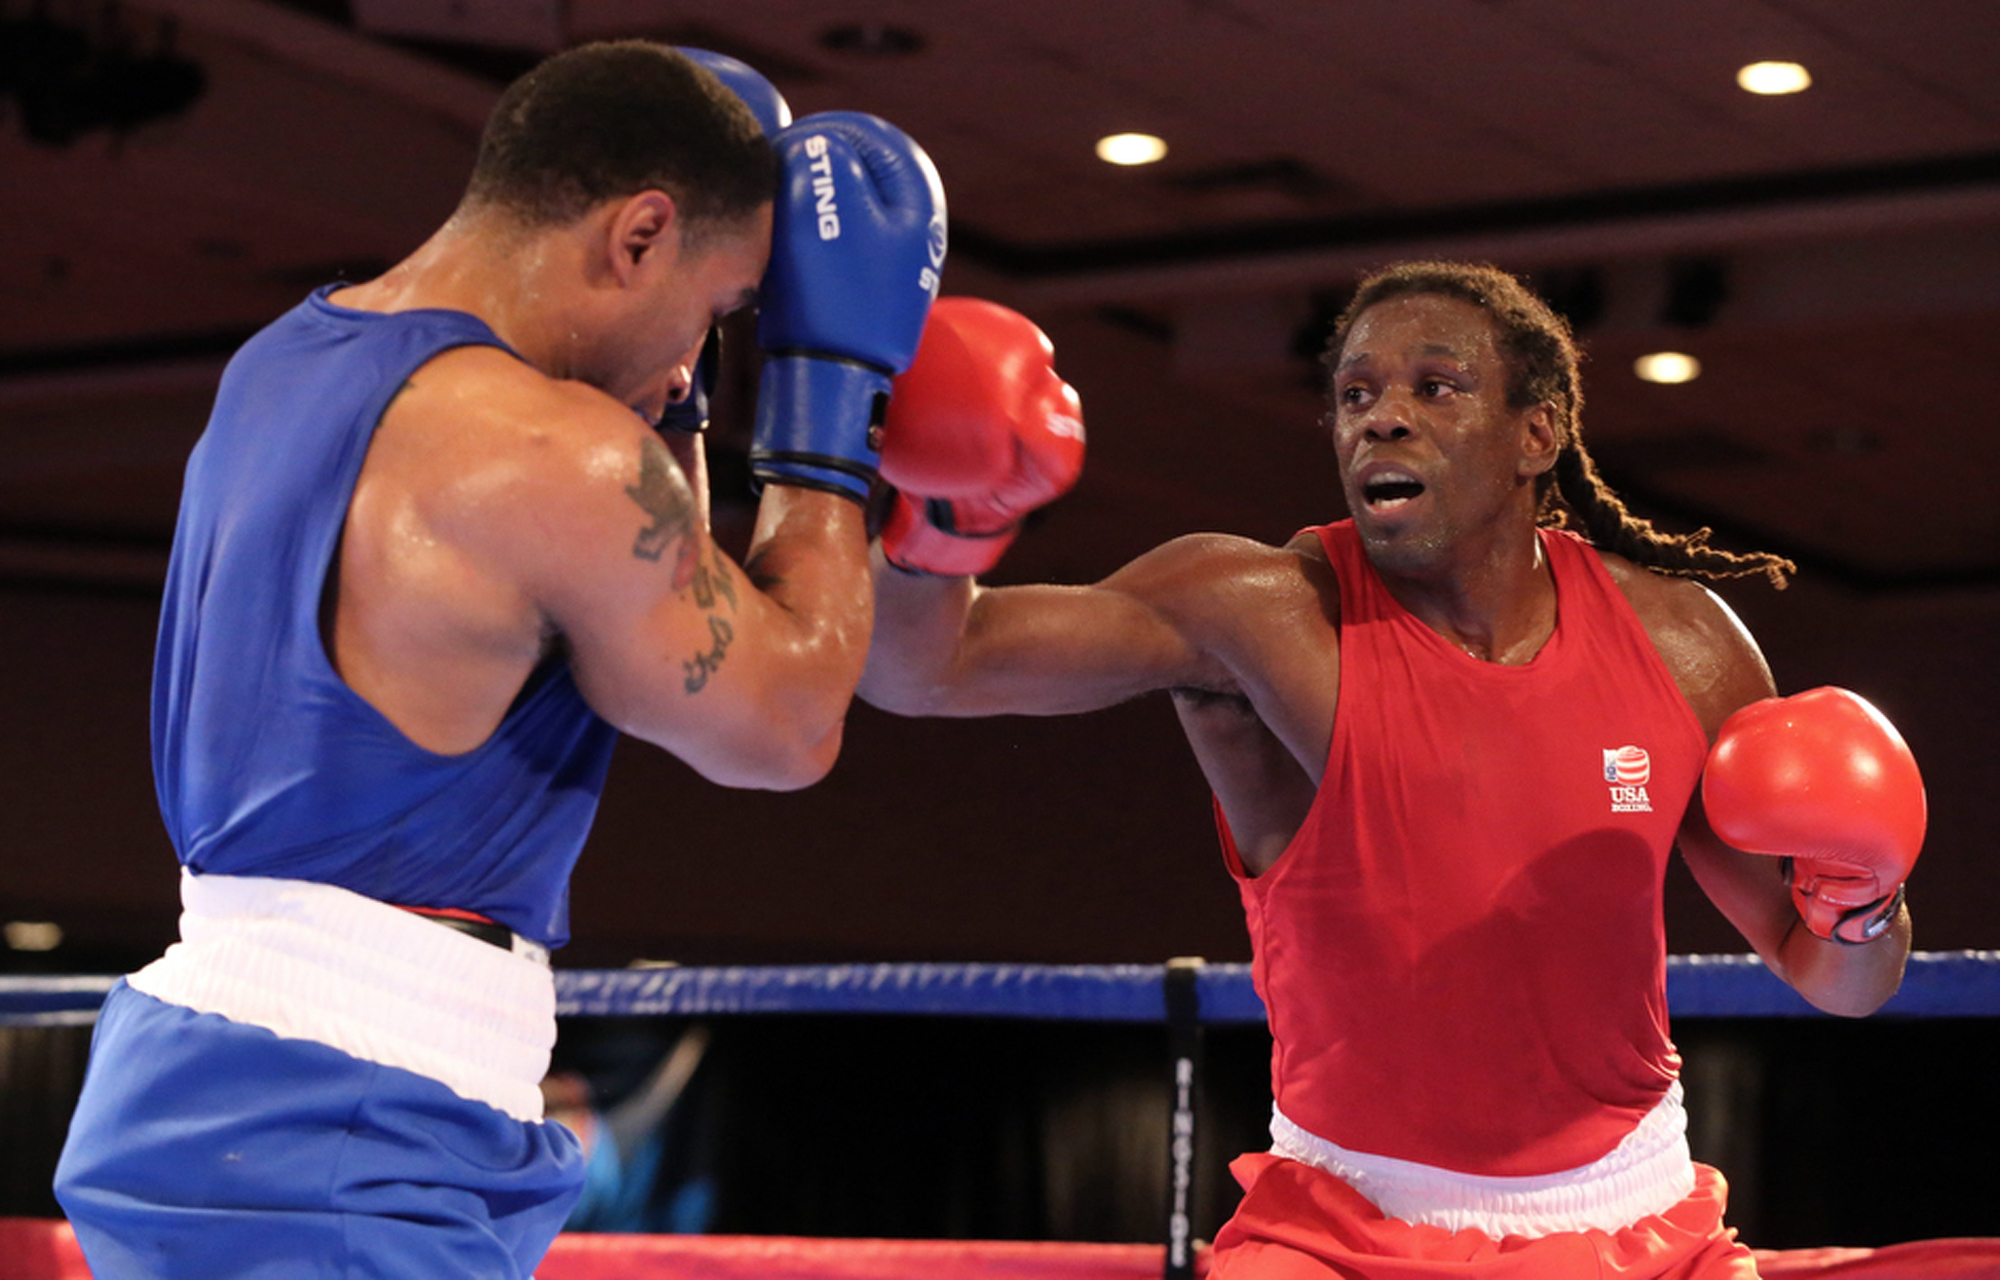 In this  Dec. 9, 2015, file photo, Derae Crane and Cam Awesome, right, compete in the U.S. Olympic boxing  trials in Reno, Nev. Awesome is down to his last chance to qualify for Rio. The colorful American heavyweight has to win a tournament that starts Su